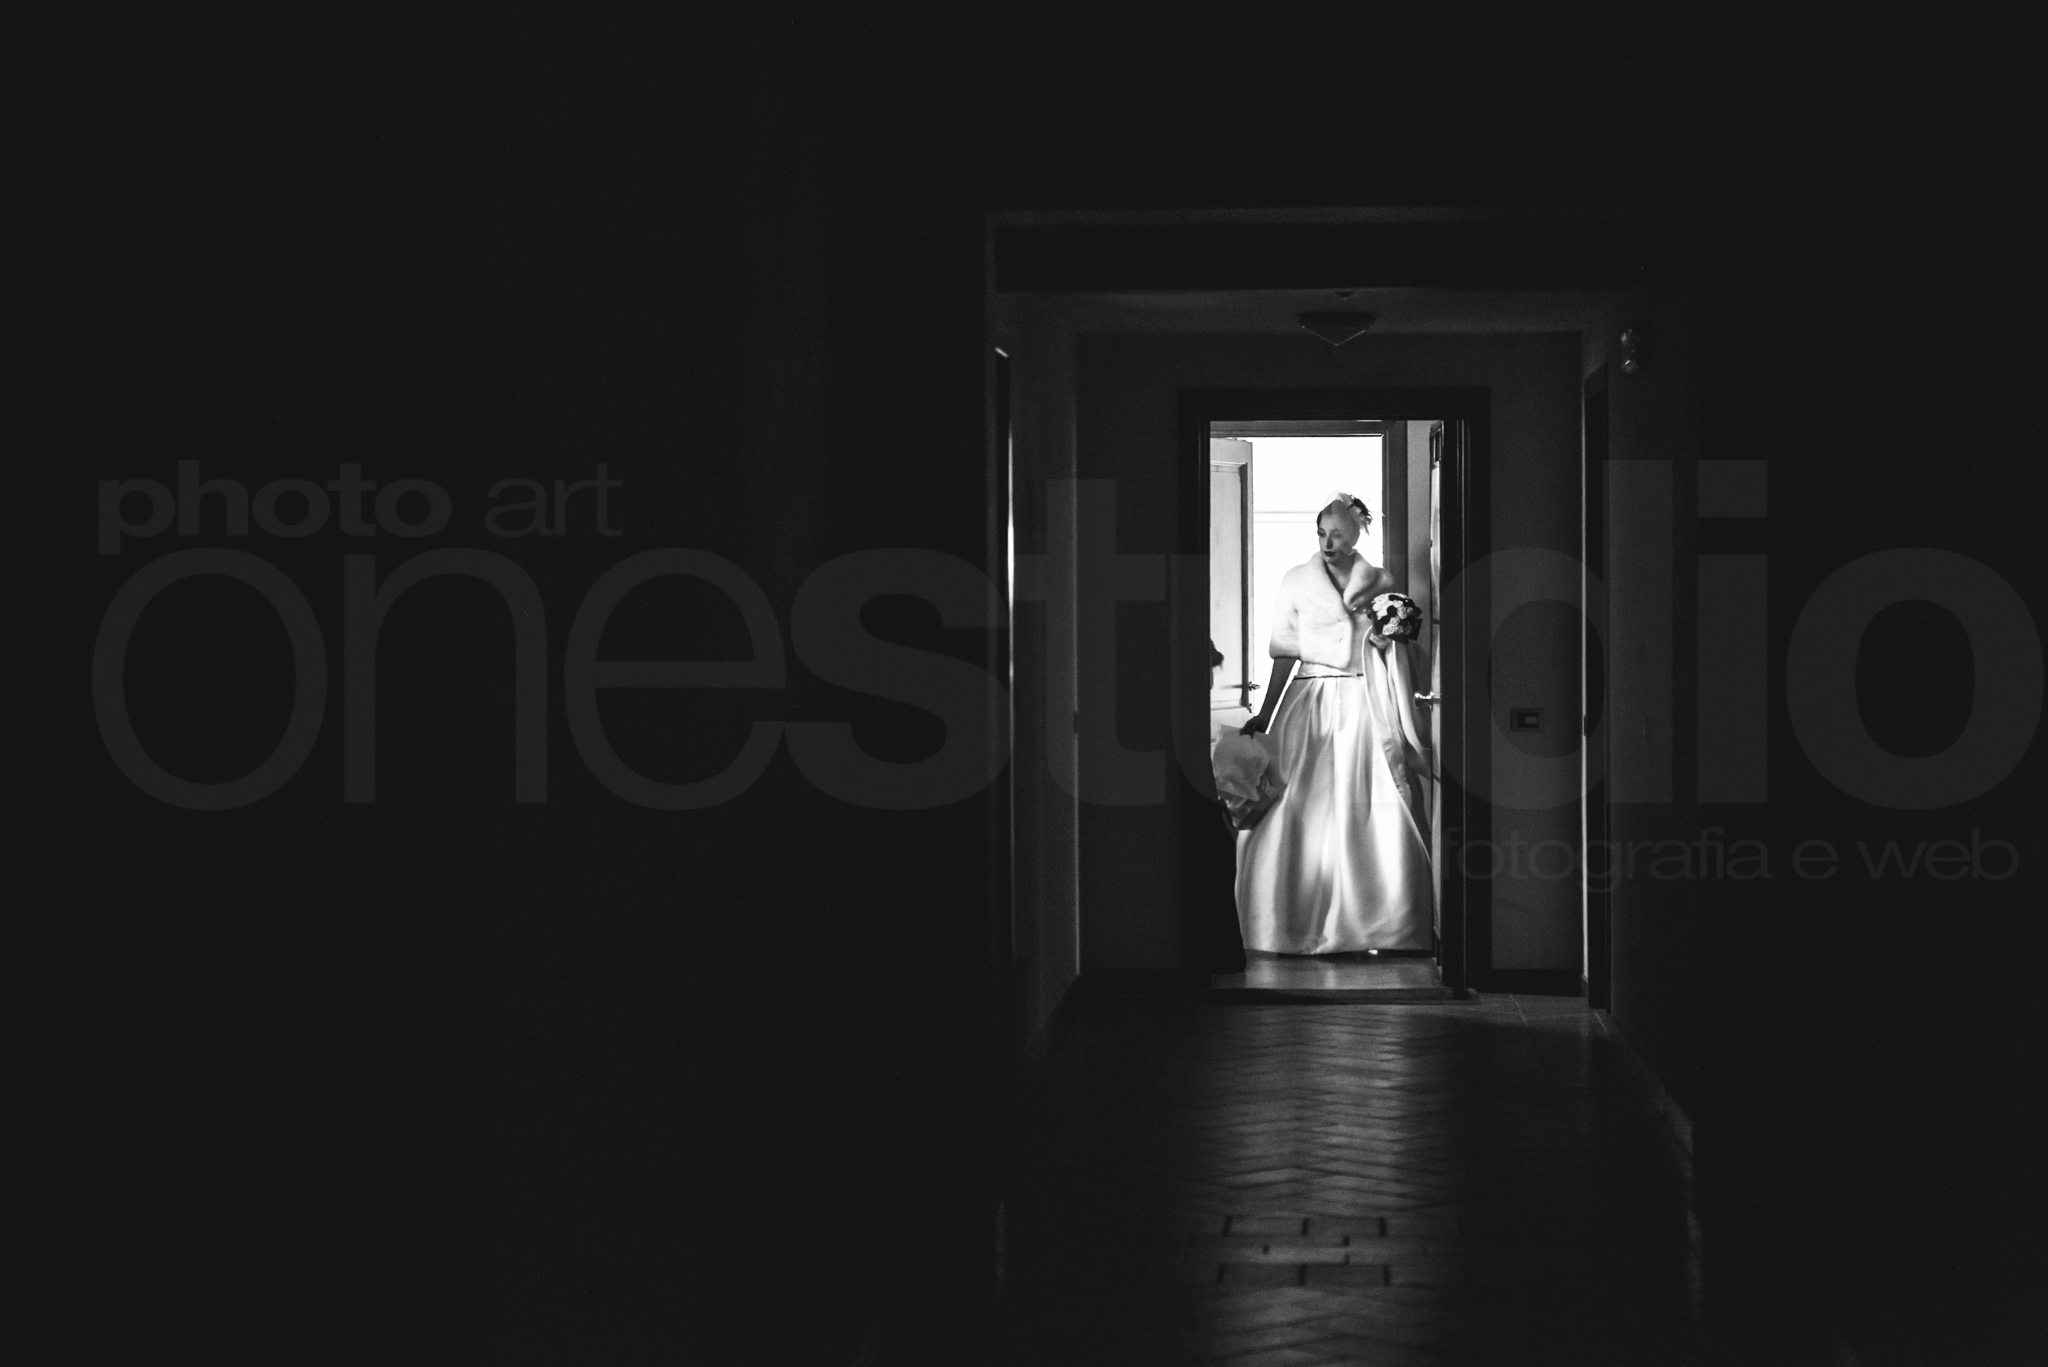 https://lnx.mirkone.it/wp-content/uploads/2015/07/fotografo-matrimoni-faenza-0026-3.jpg